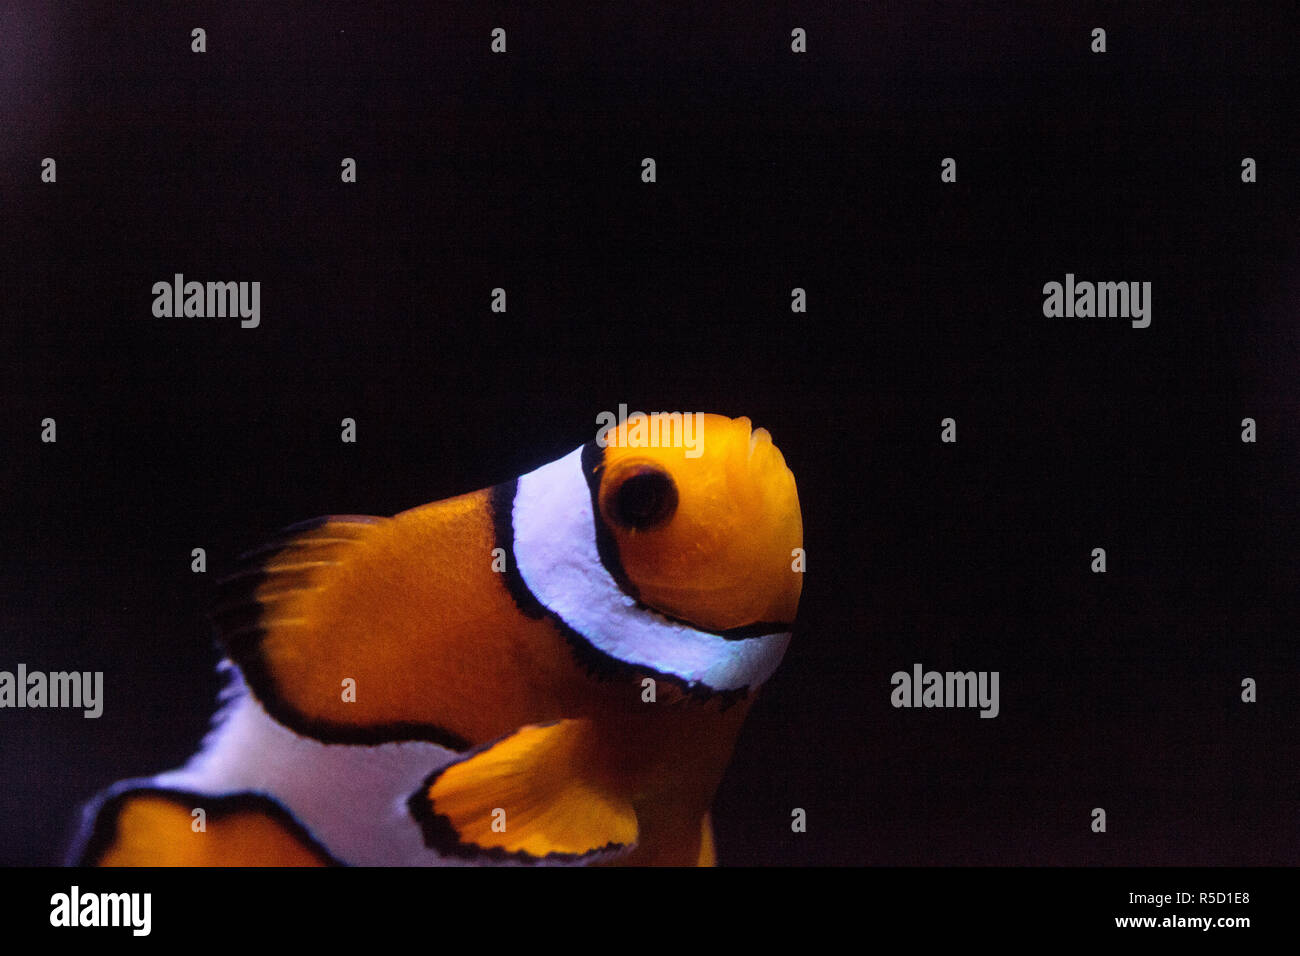 Clownfish, Amphiprioninae, in a marine fish Stock Photo